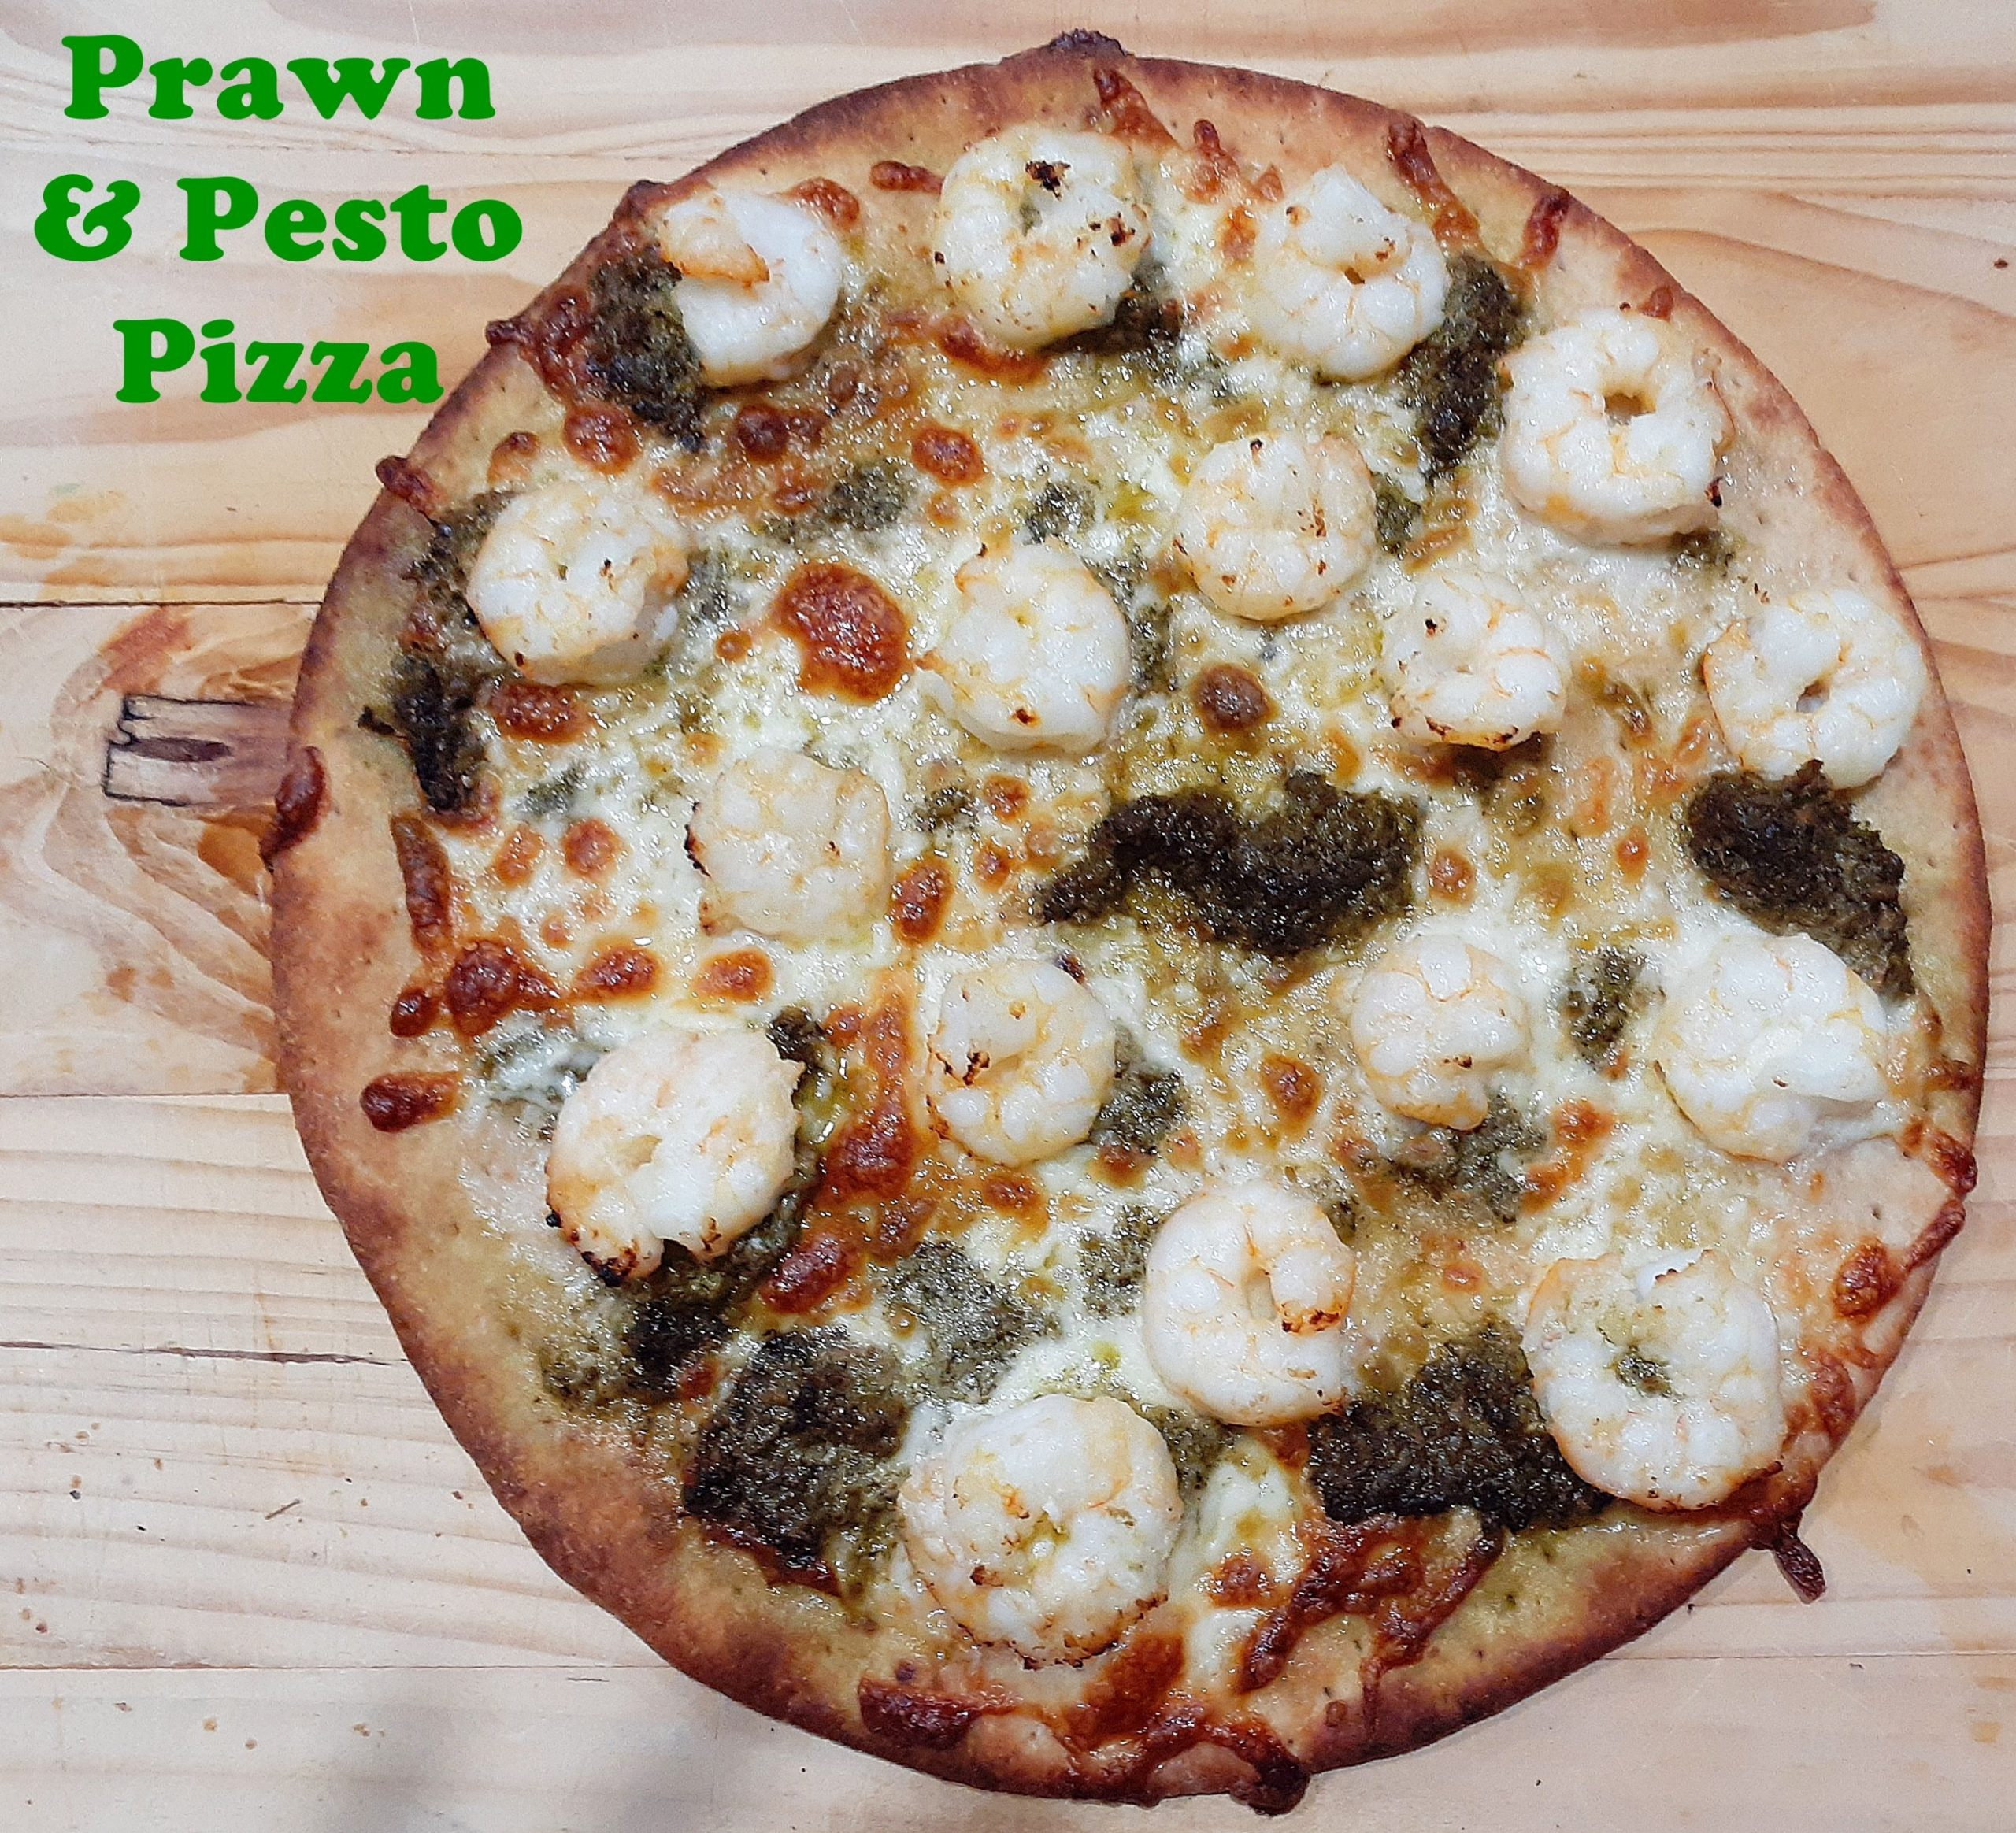 Easy Weeknight Pizza Recipes - 10 Ingredients or Less - Everywhere - Pizza Recipes Australia